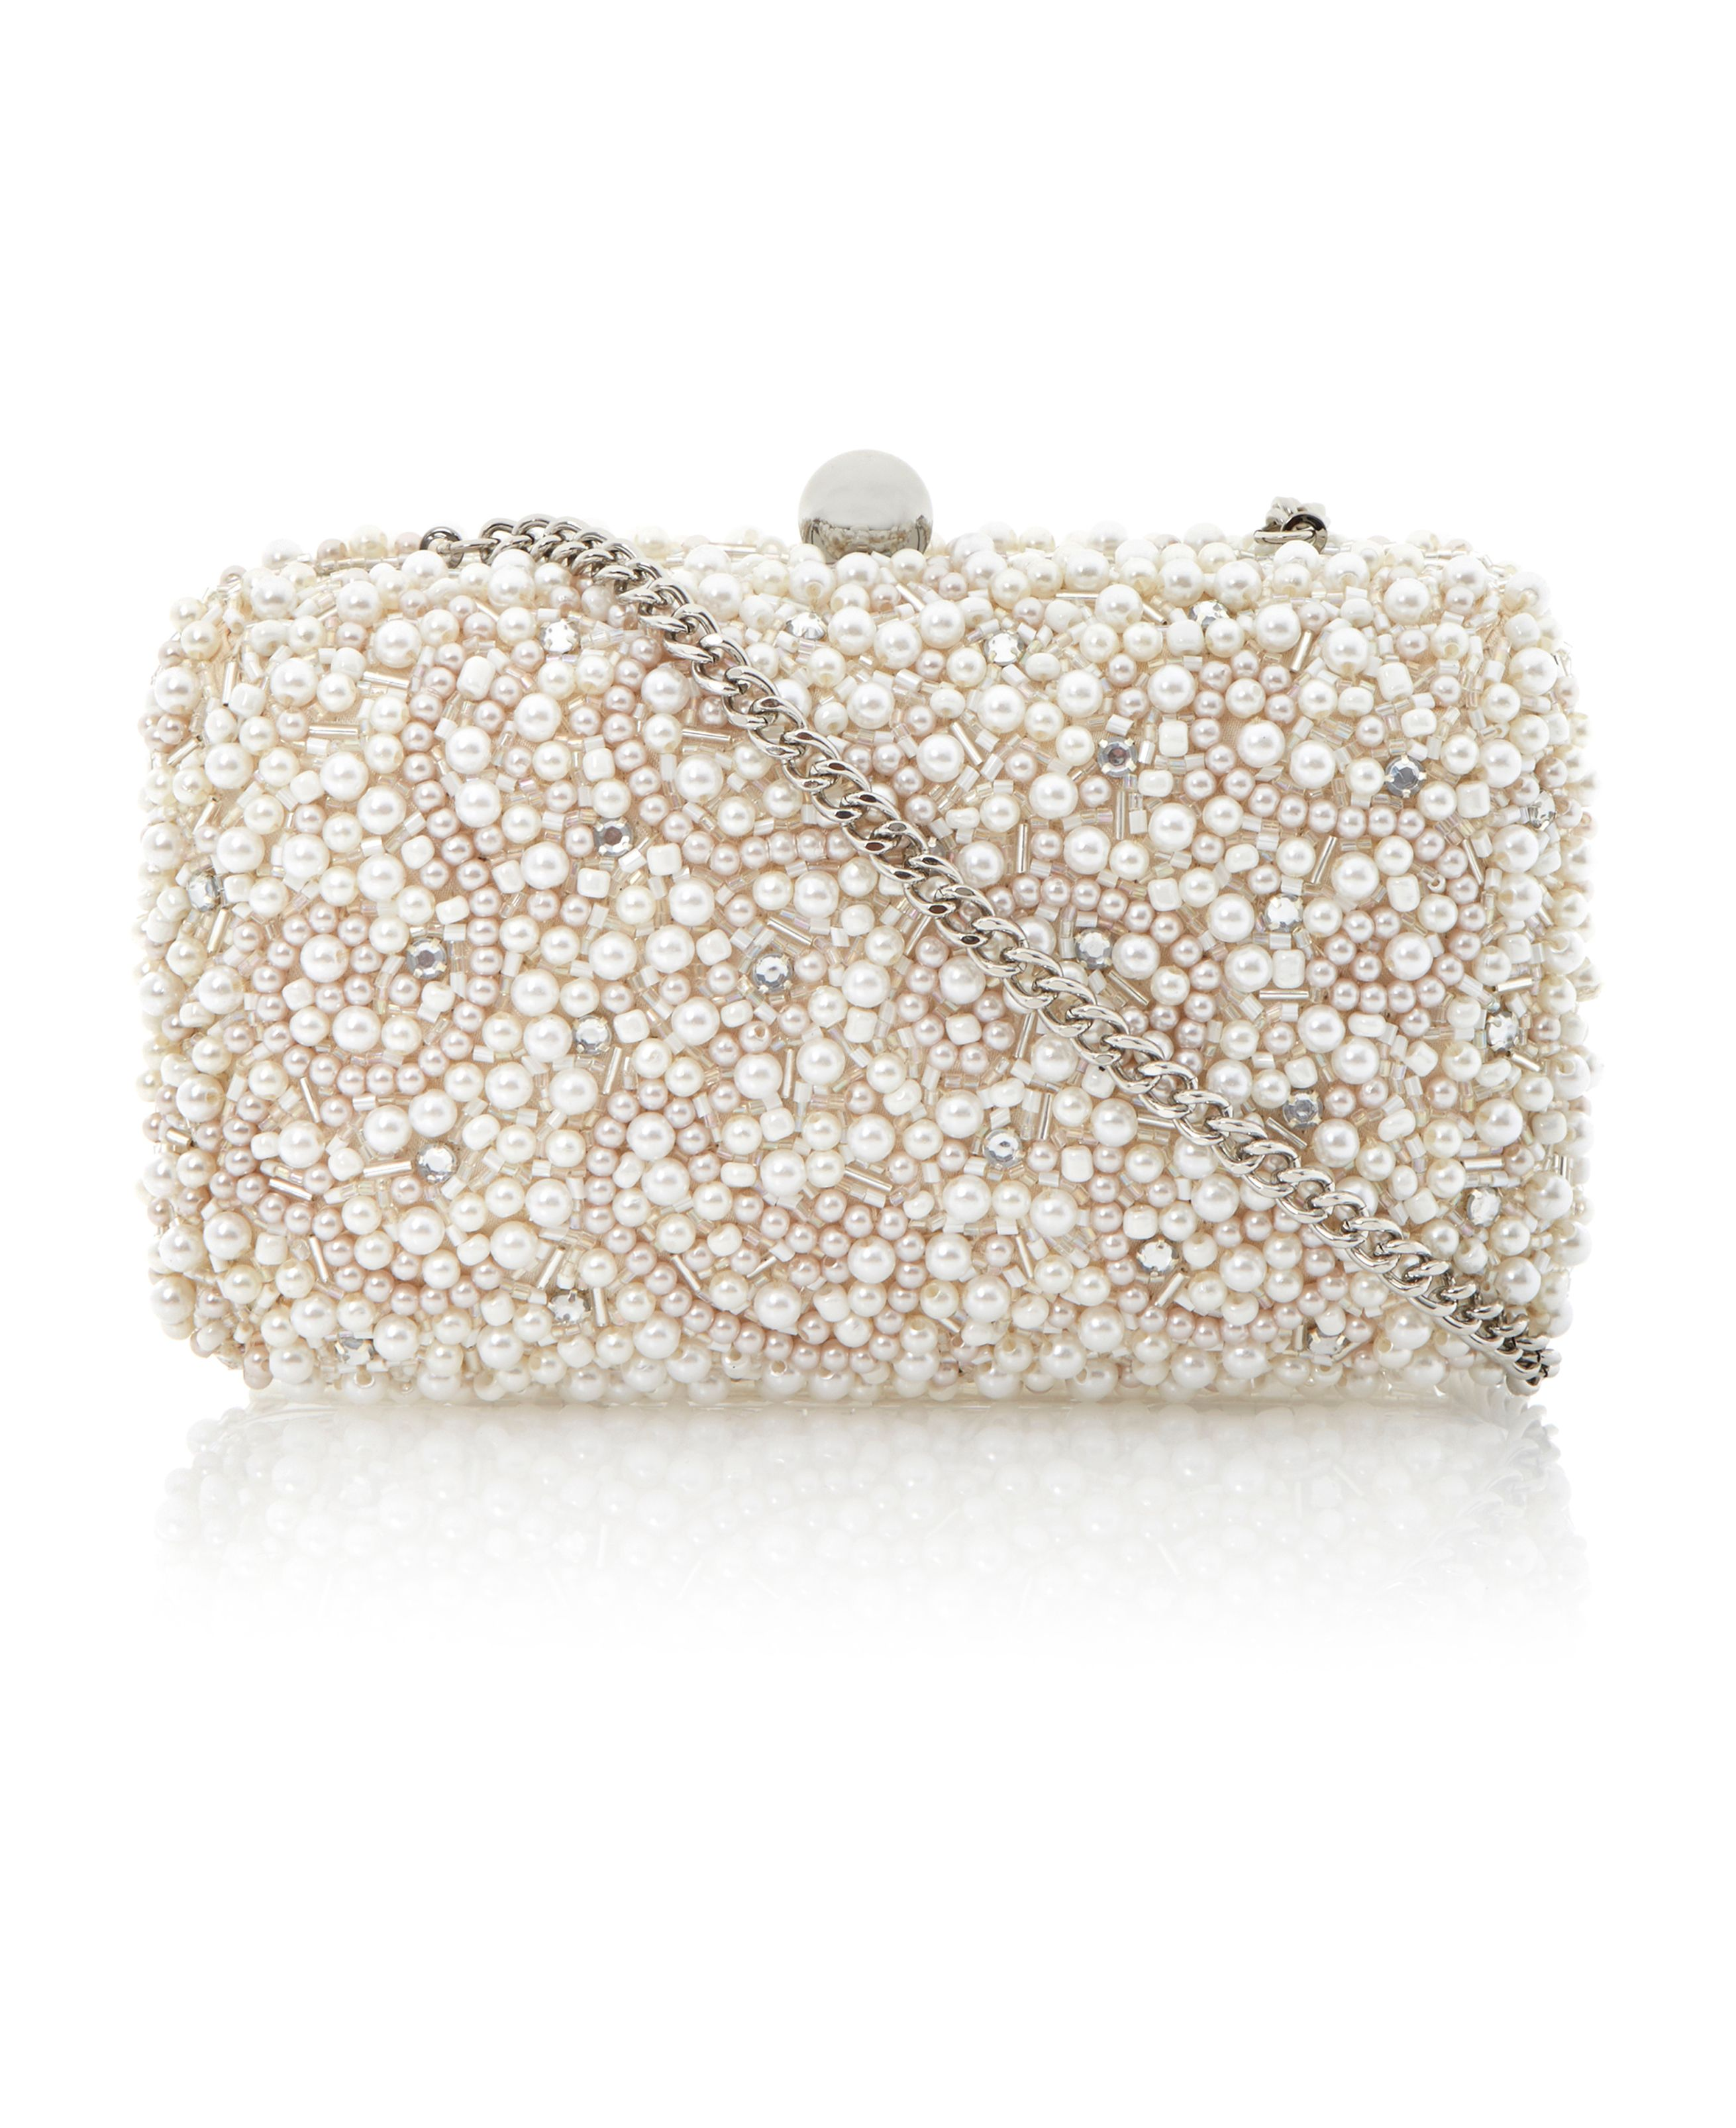 Bedazzled all over pearl beaded clutch bag